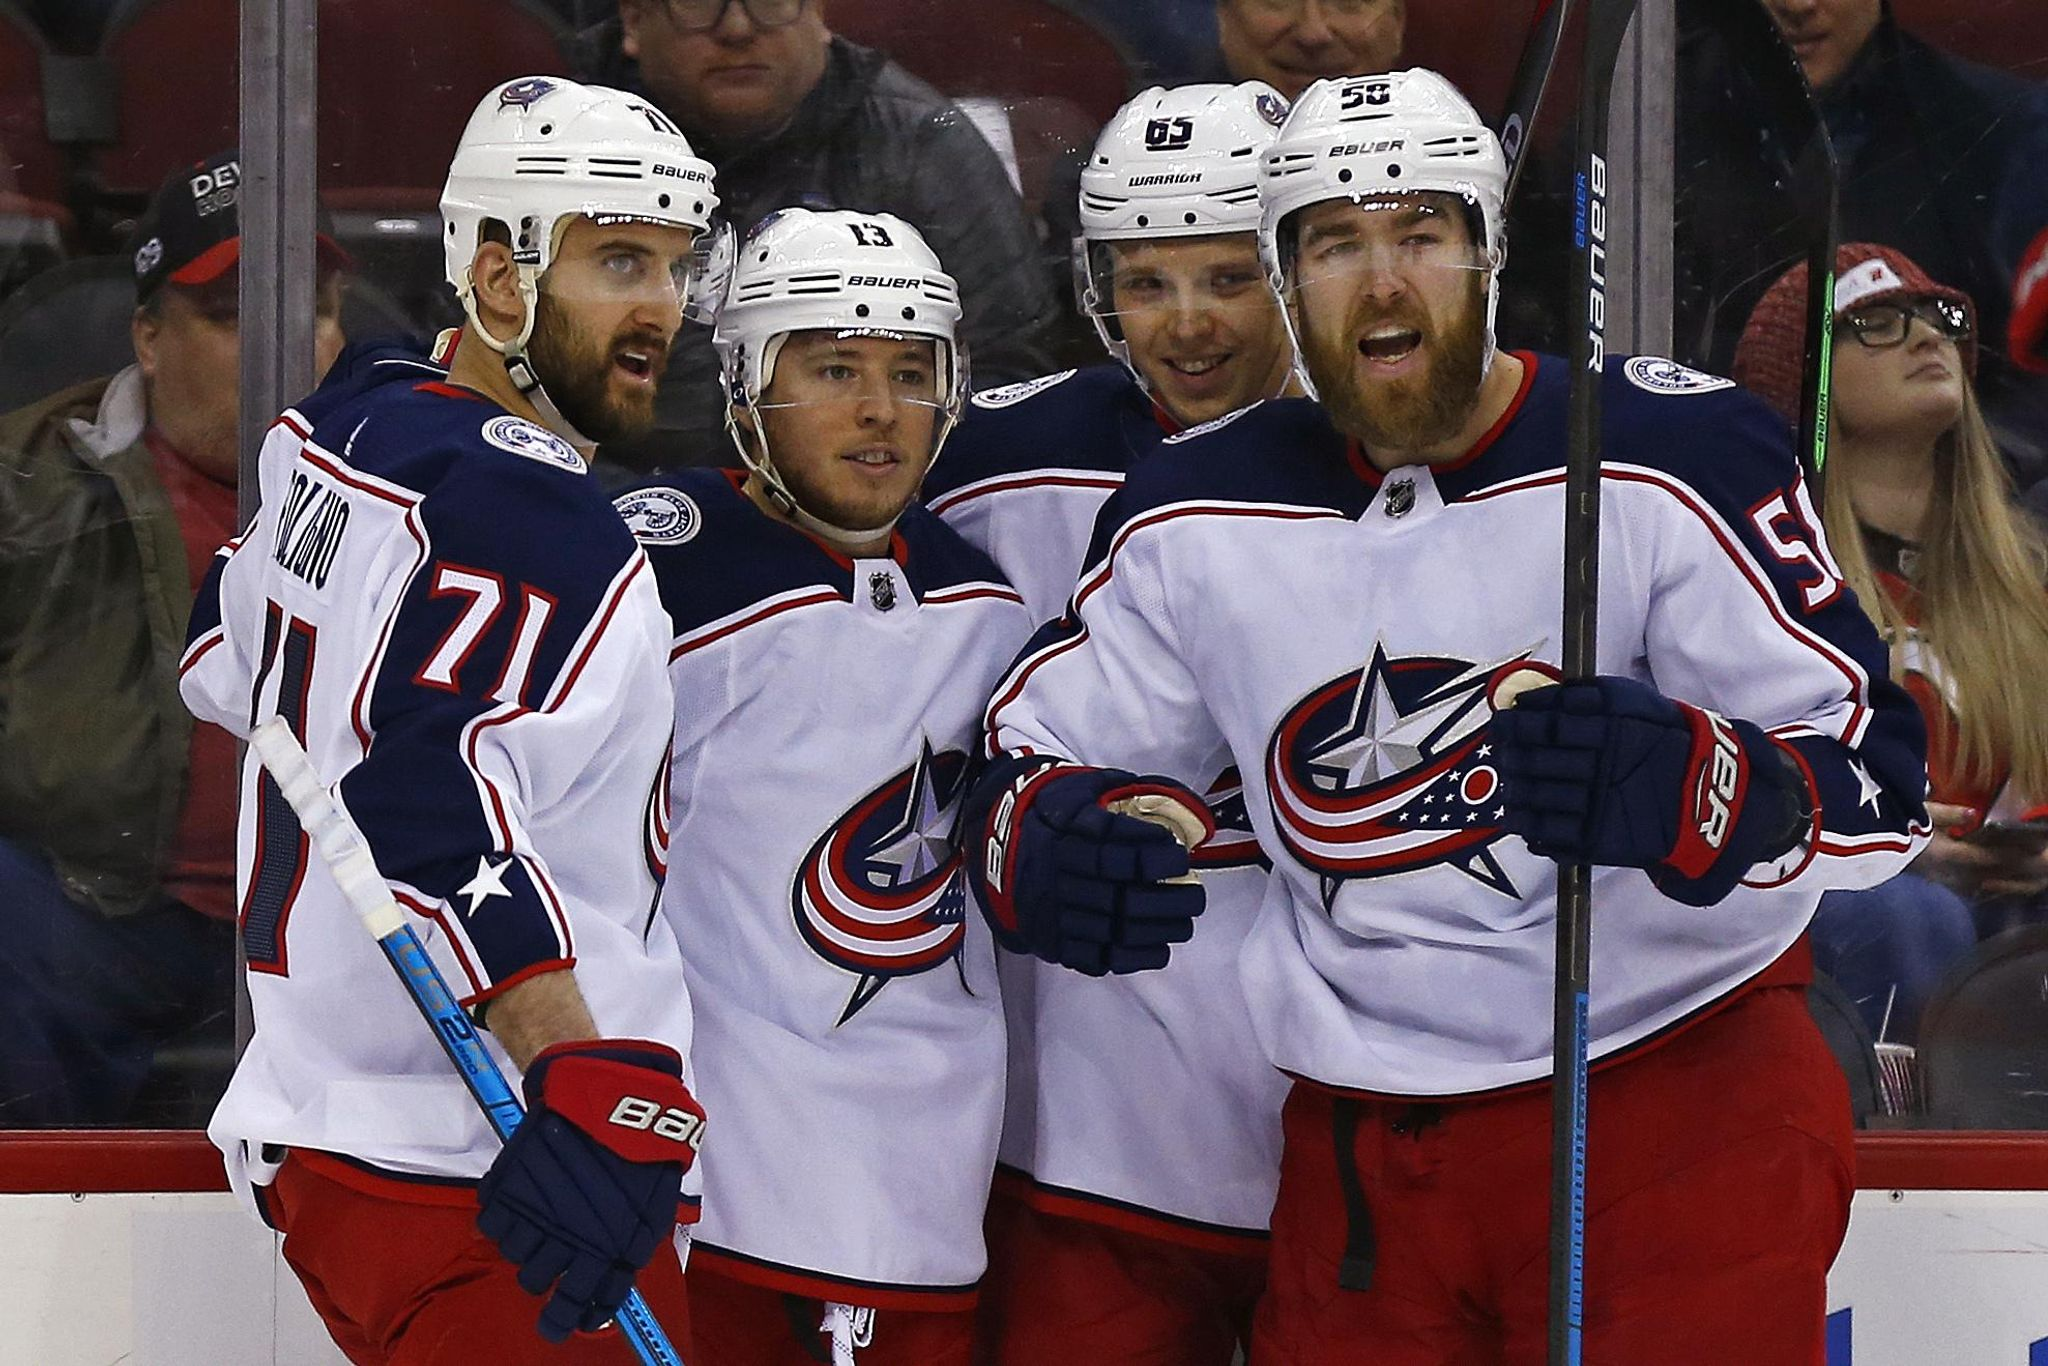 Blue_jackets_devils_hockey_35917_s2048x1366